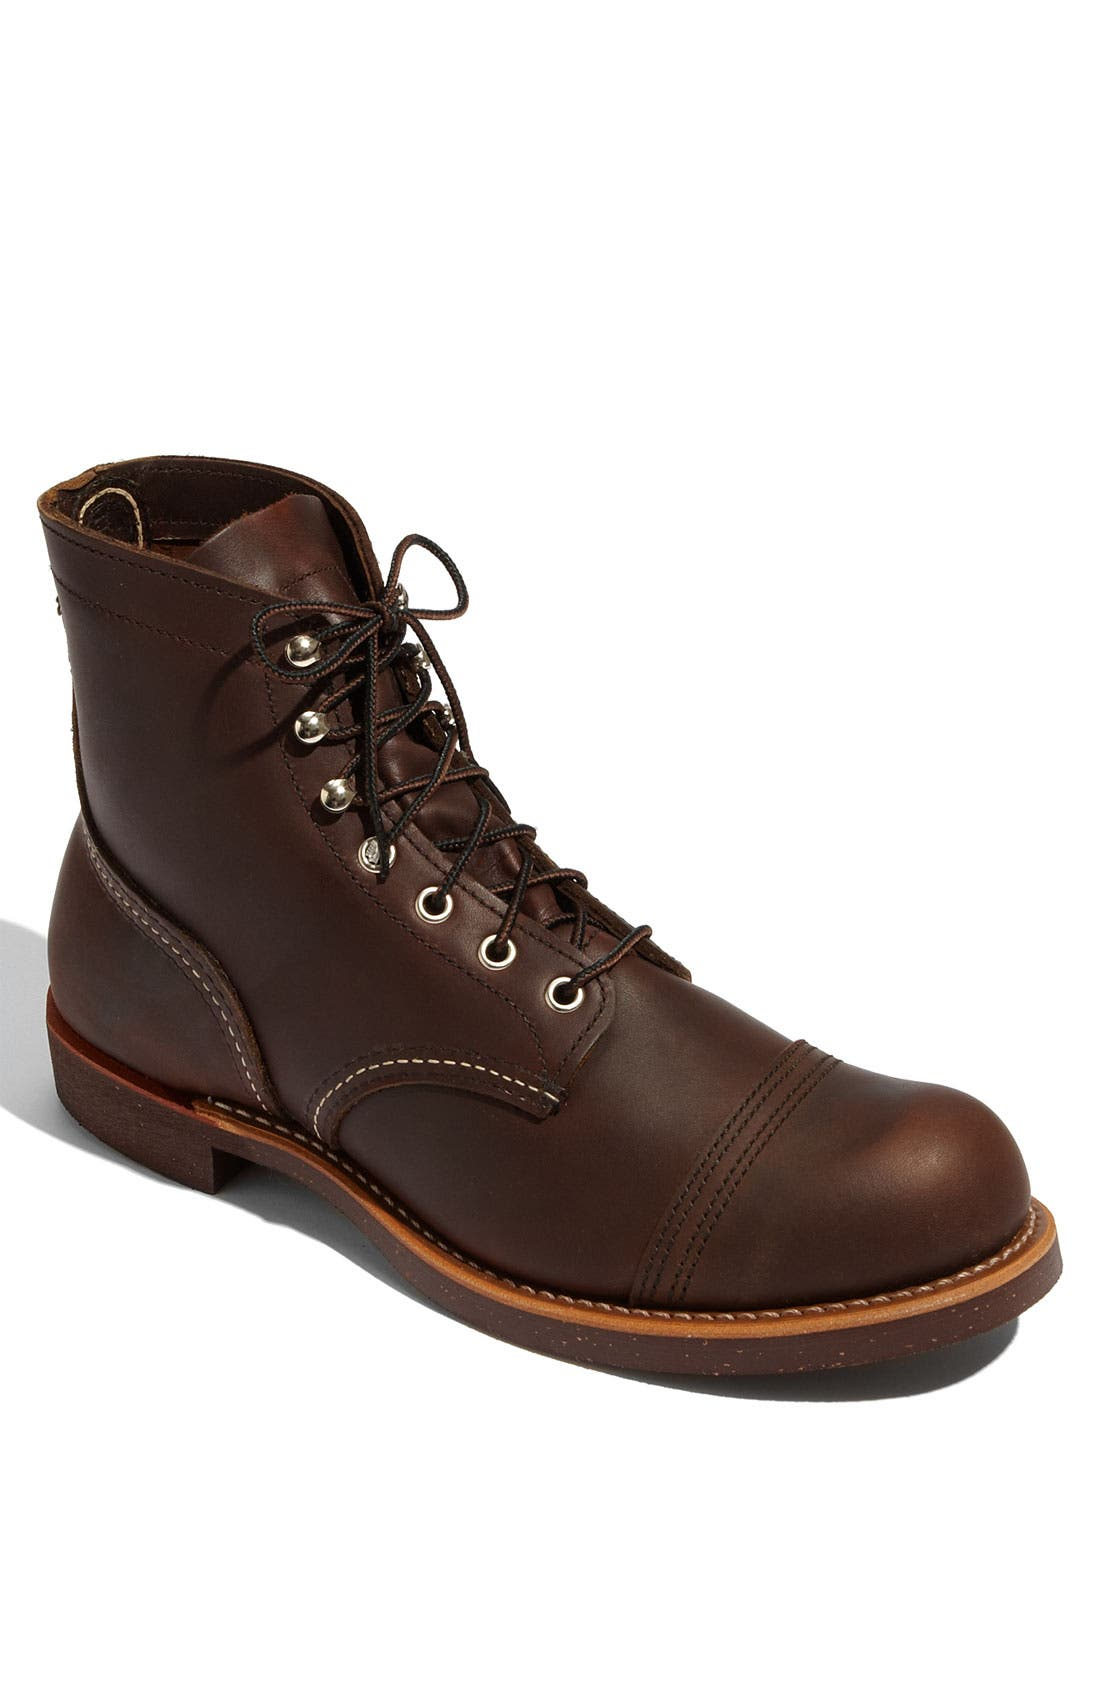 'Iron Ranger' 6 Inch Boot,                         Main,                         color, Amber Harness Leather